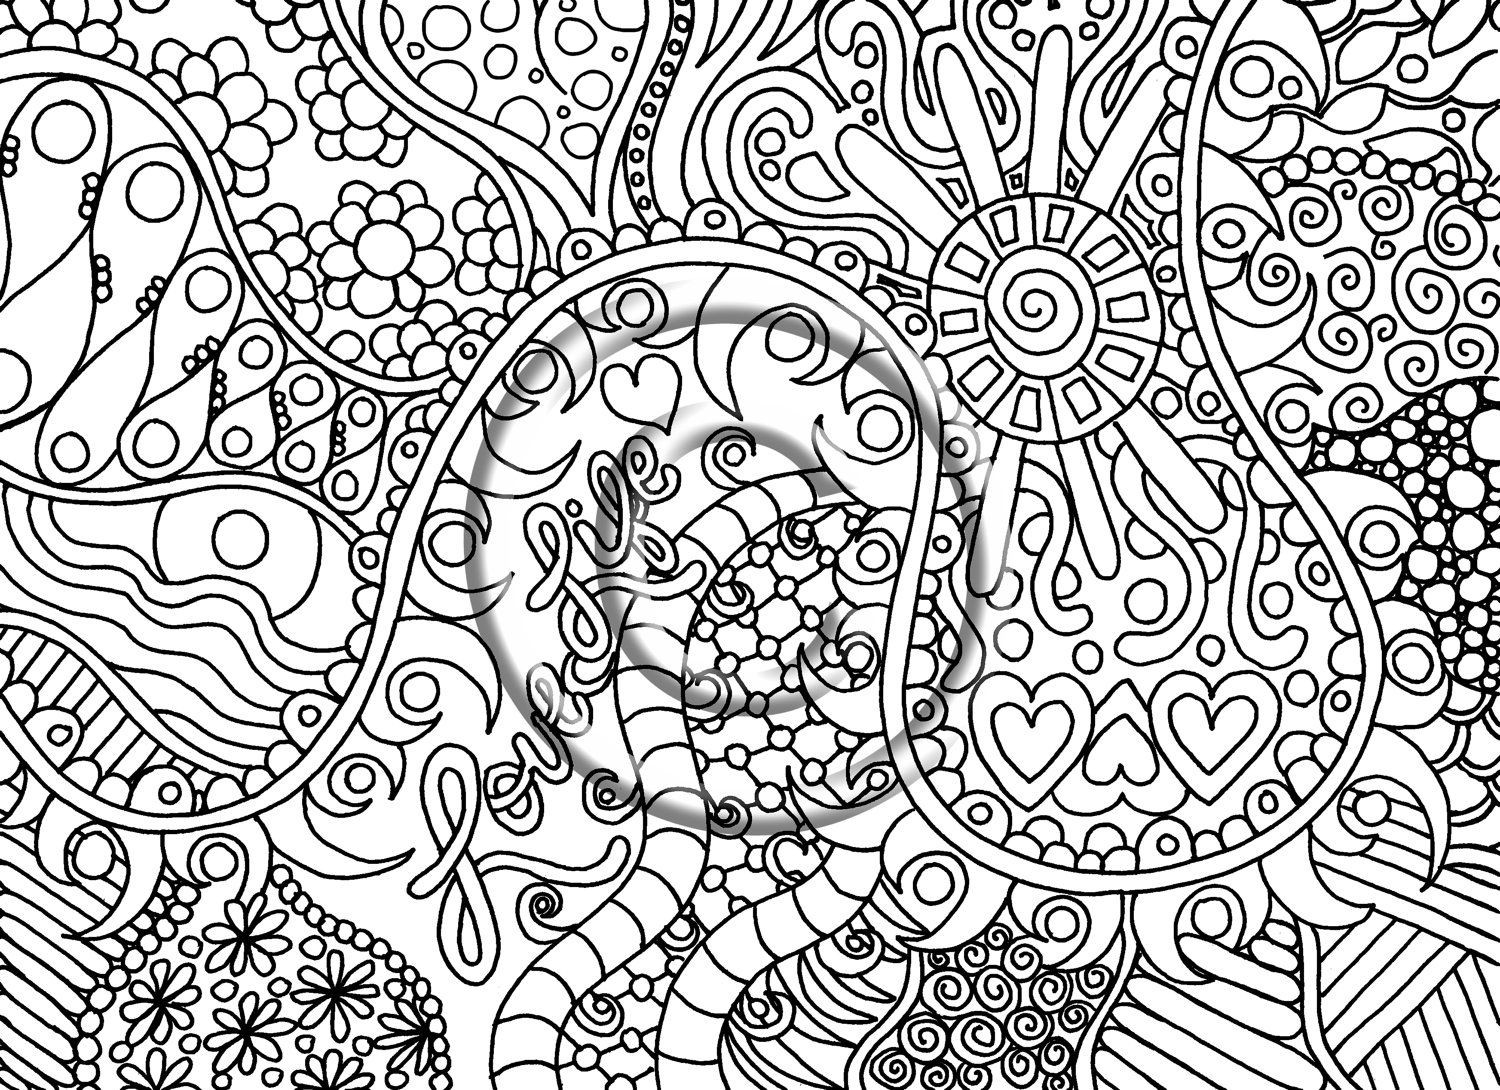 1500x1090 Printable Download Coloring Page Hand Drawn Zentangle Inspired